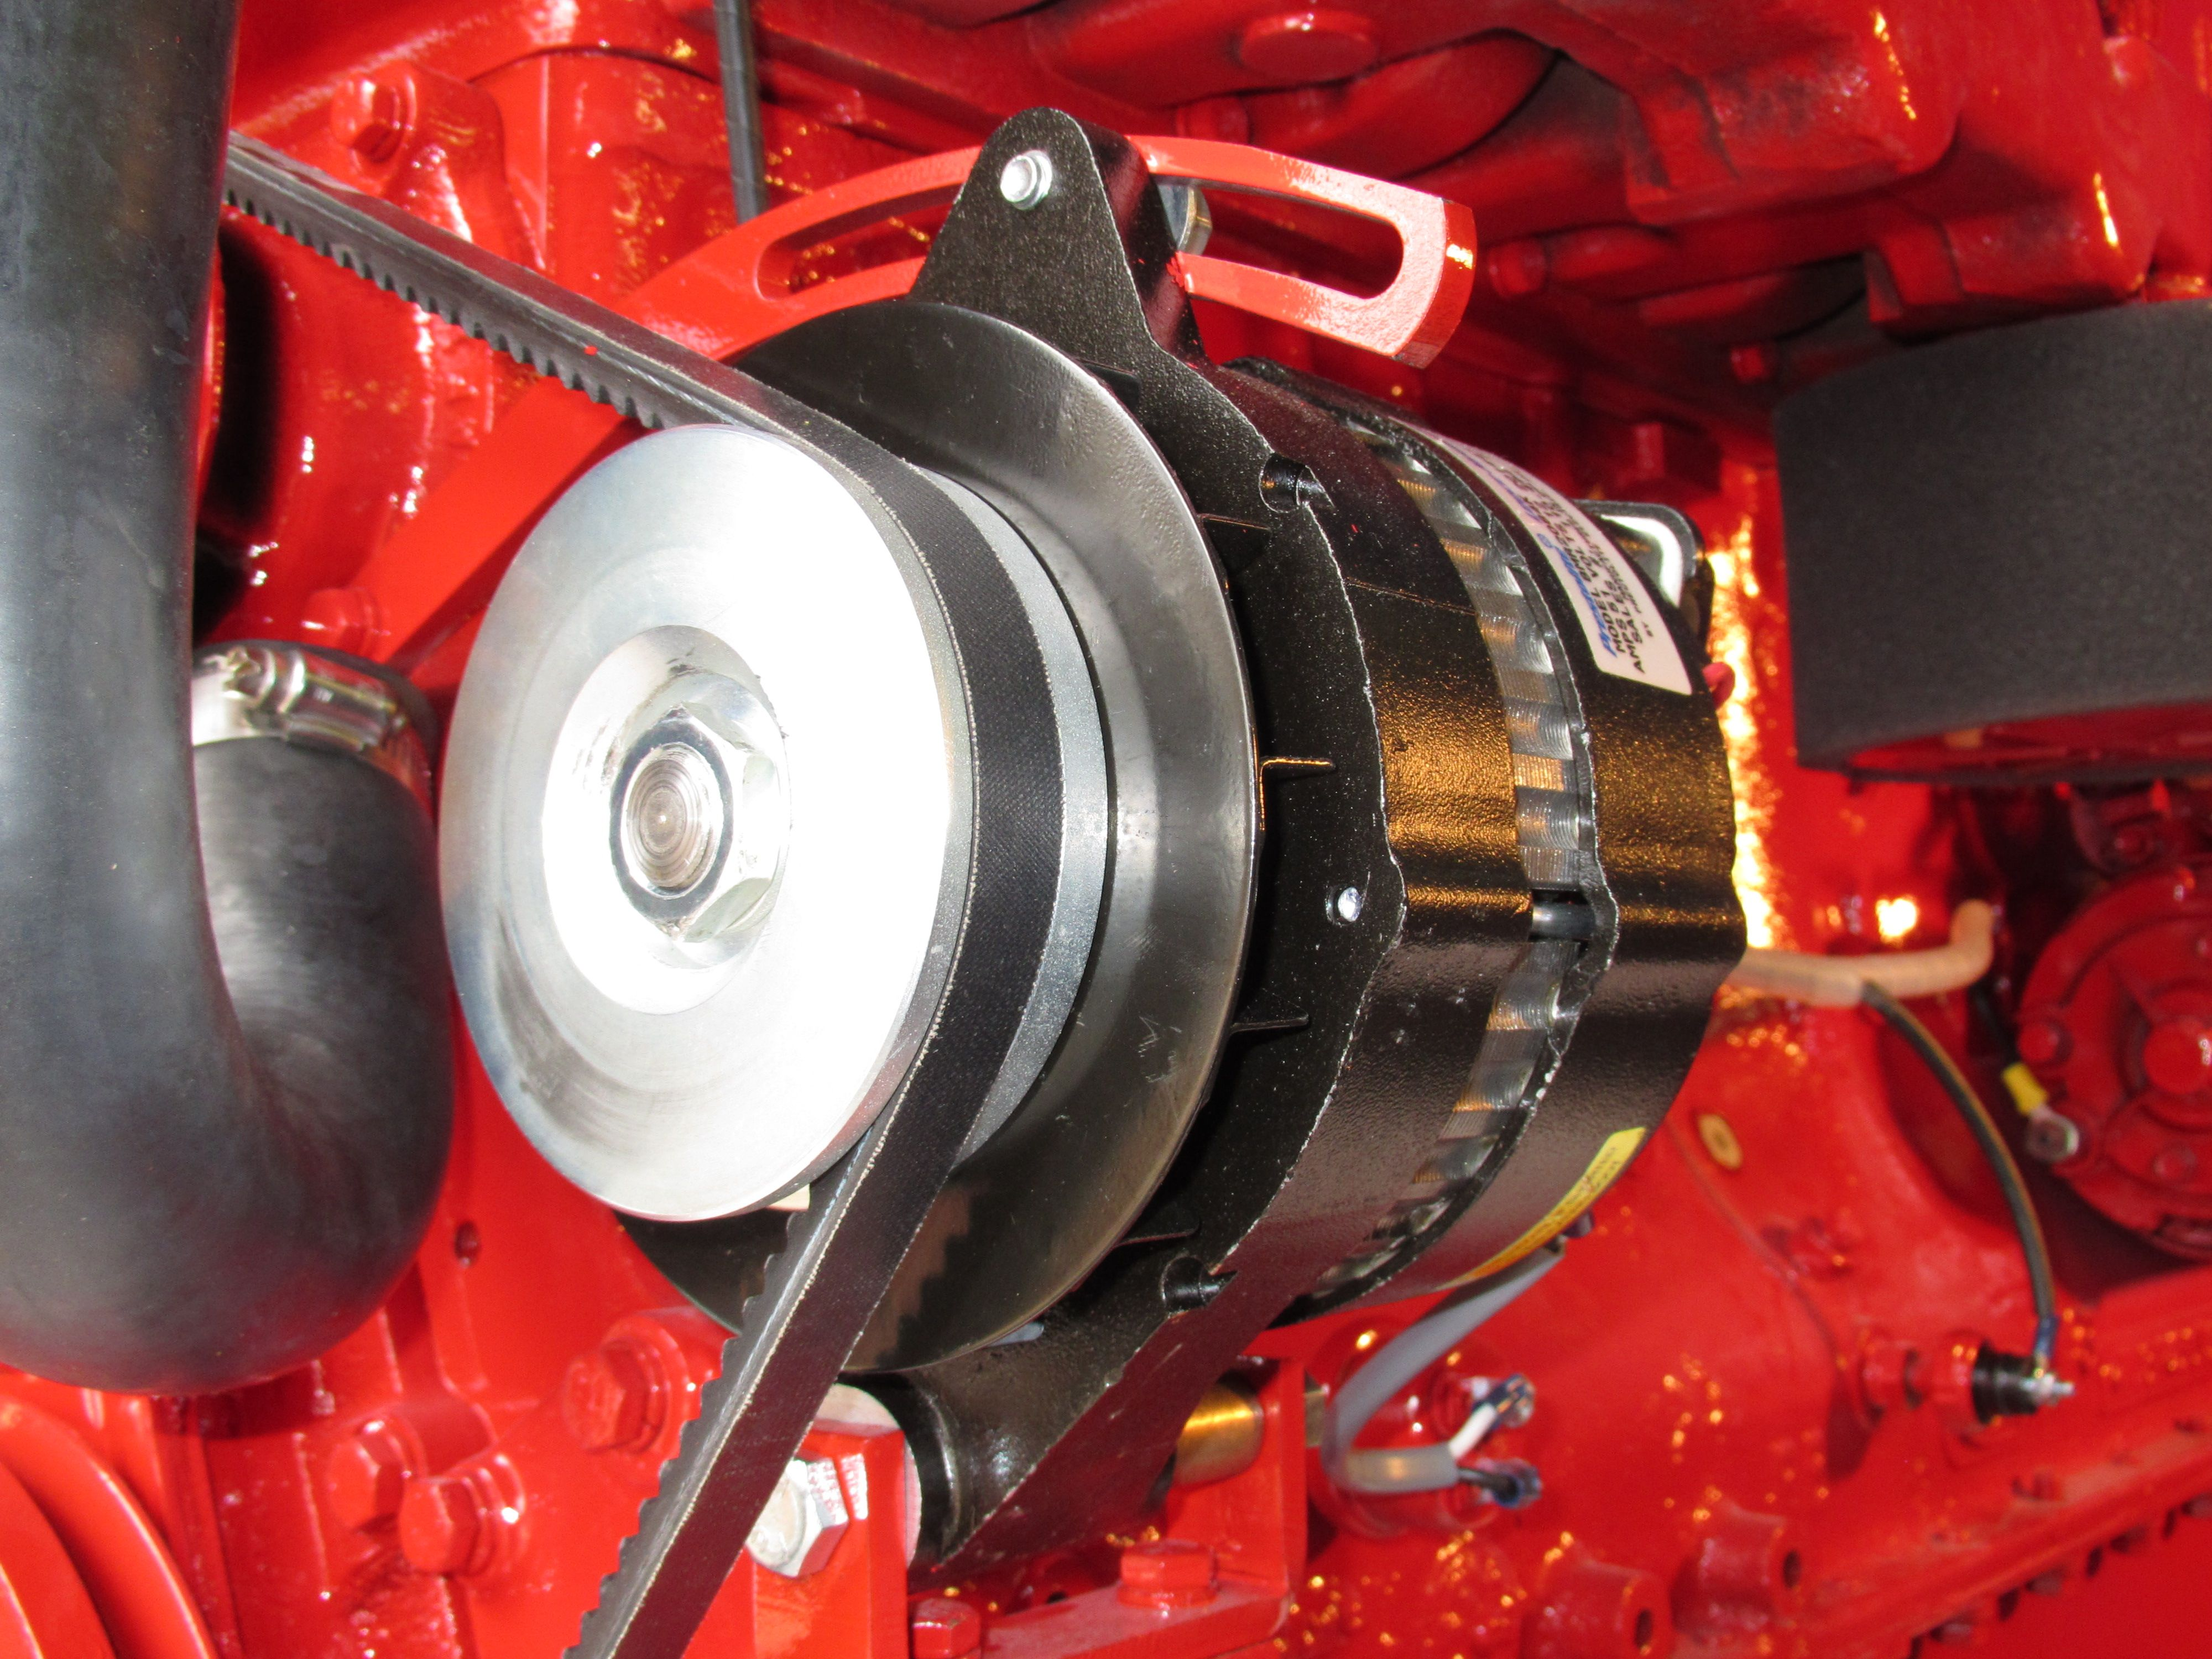 Lehman Ford Standard Alternator Kit Part Number 510 0551 Uses A Internal Regulator Prestolite 51 Amp With This Unit Is Energized By Engine Oil